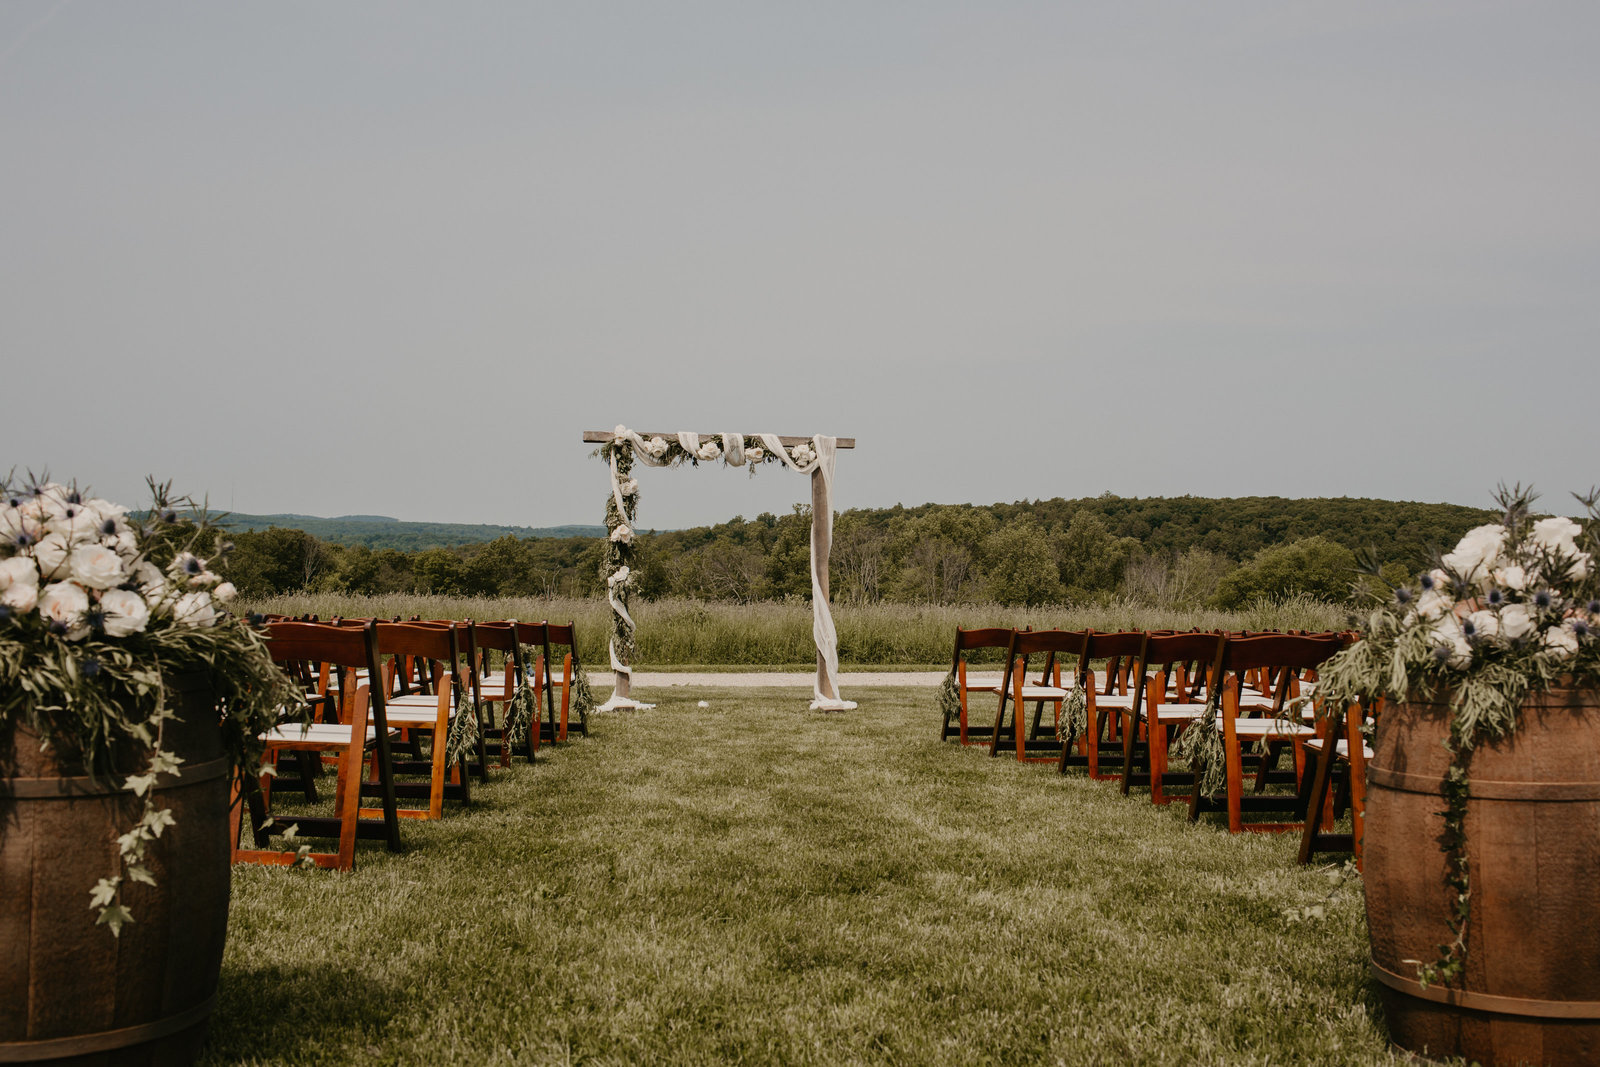 Ceremony space at a Connecticut wedding.